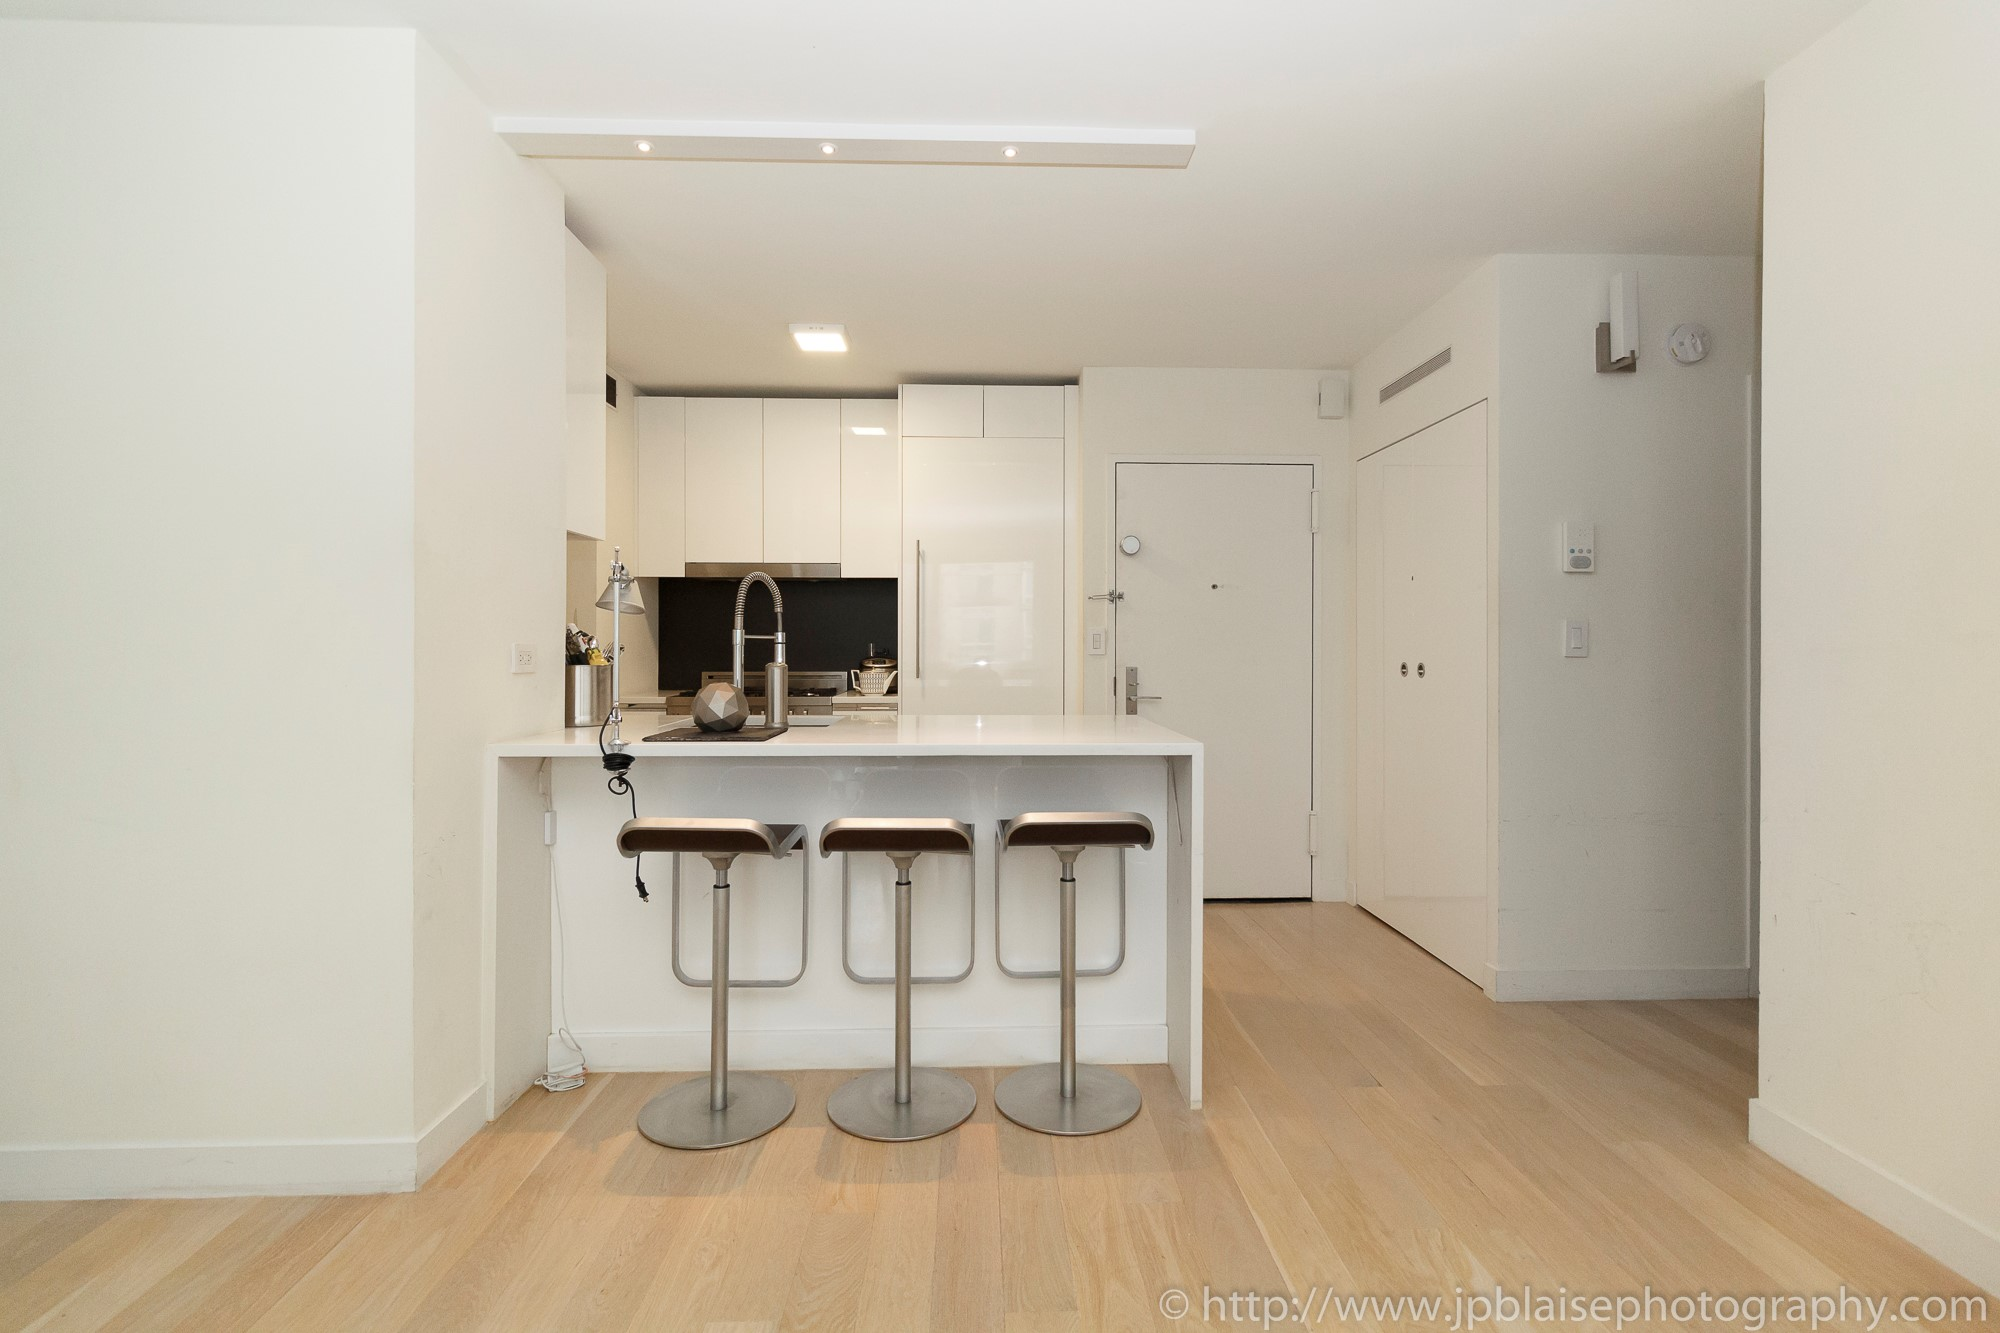 New york city apartment photographer ny nyc real estate interior photography midtown west kitchen